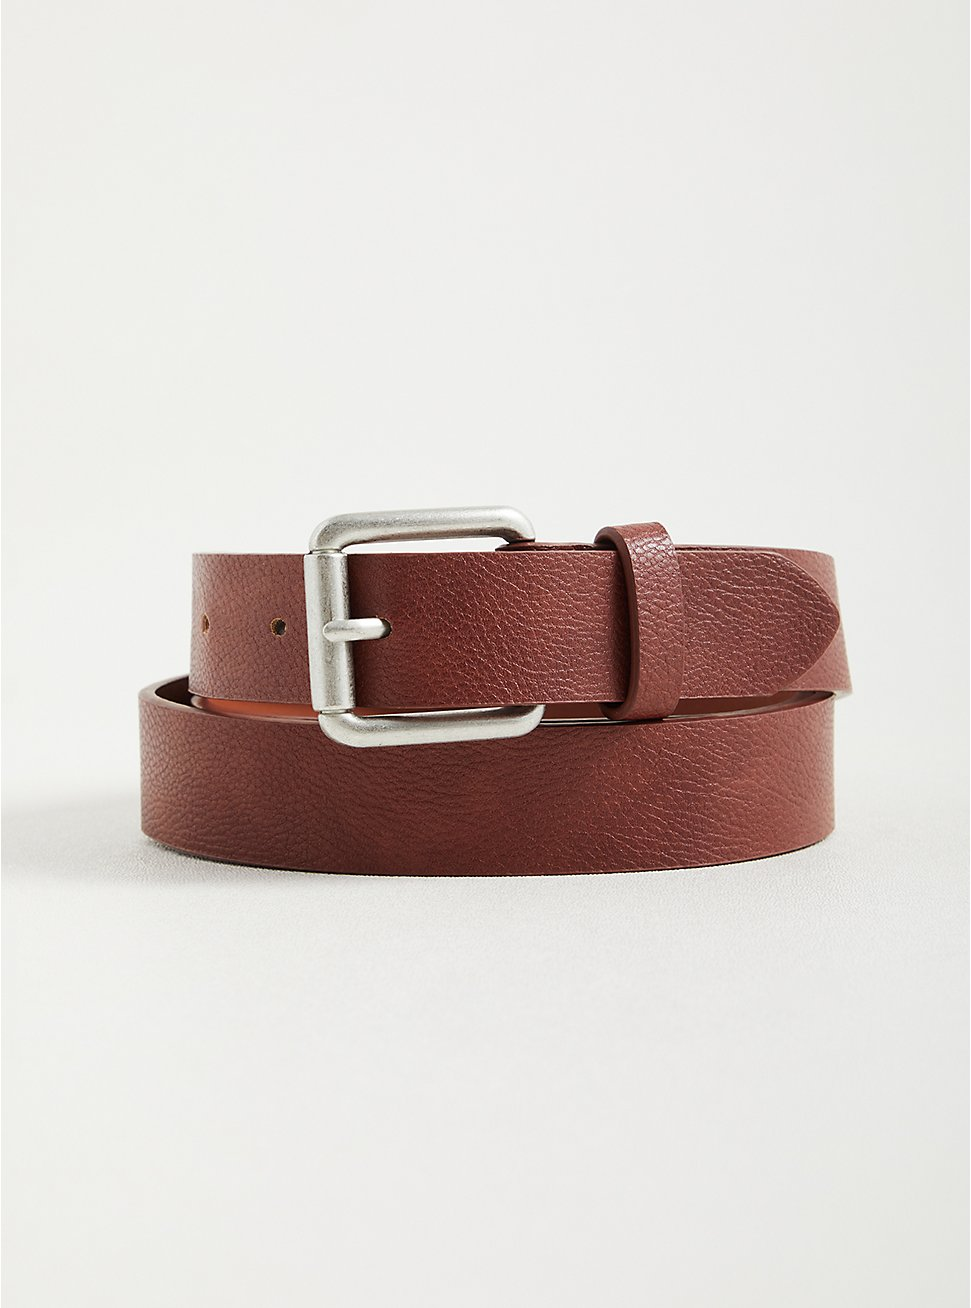 Jean Belt with Burnished Silver Buckle -  Faux Leather Chocolate Brown , BROWN, hi-res